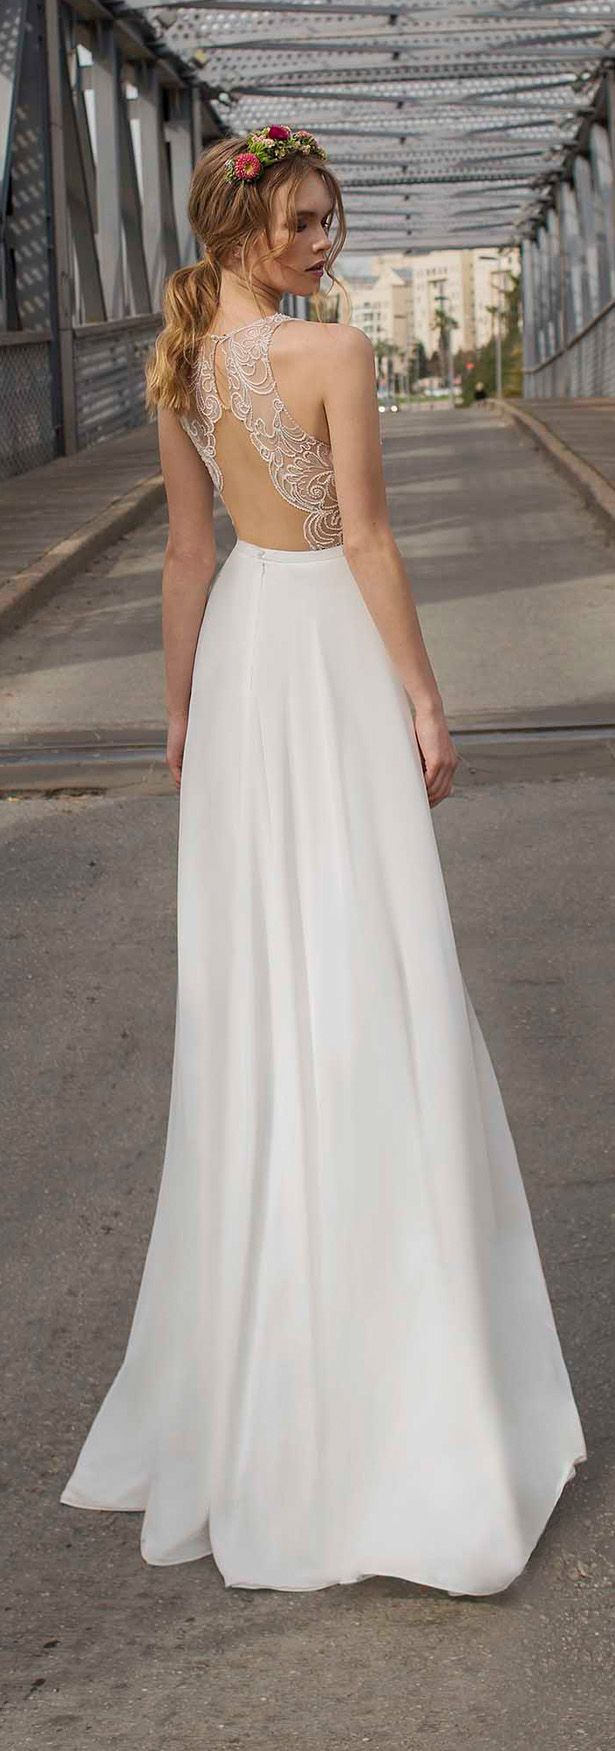 Best Wedding Dresses of 2015